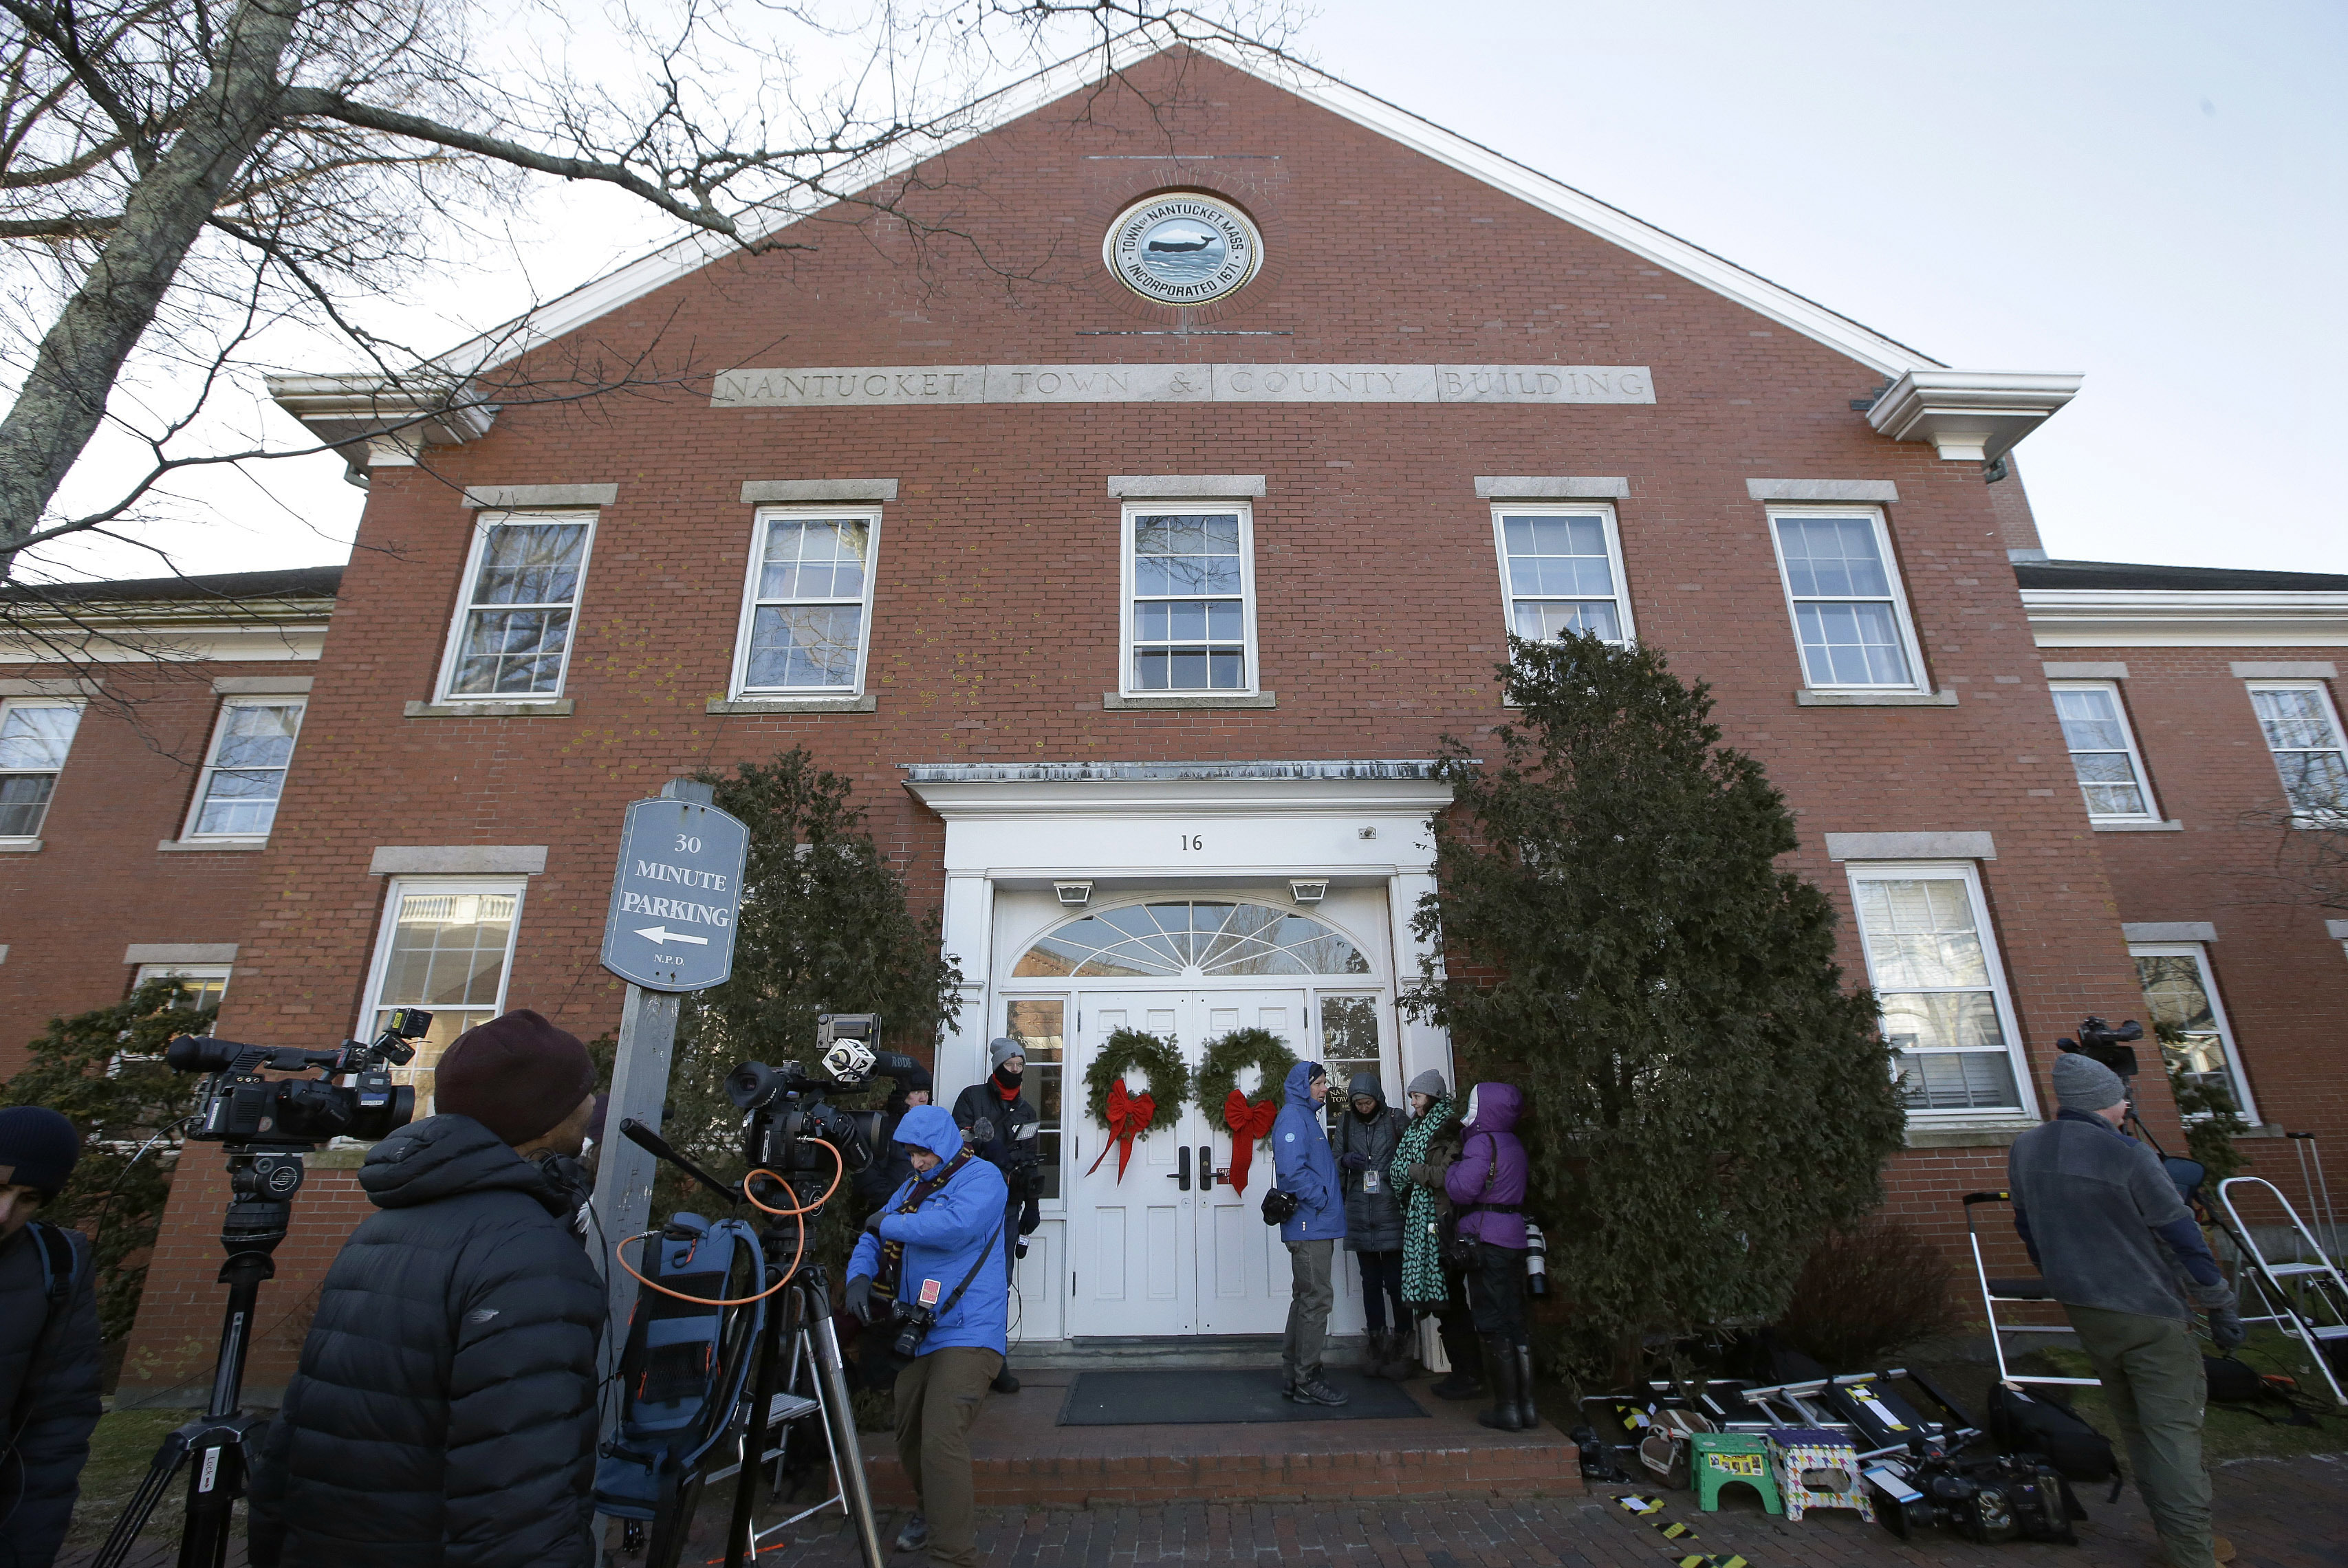 Members of the media outside the Nantucket Town & County Building, awaiting arrival of actor Kevin Space